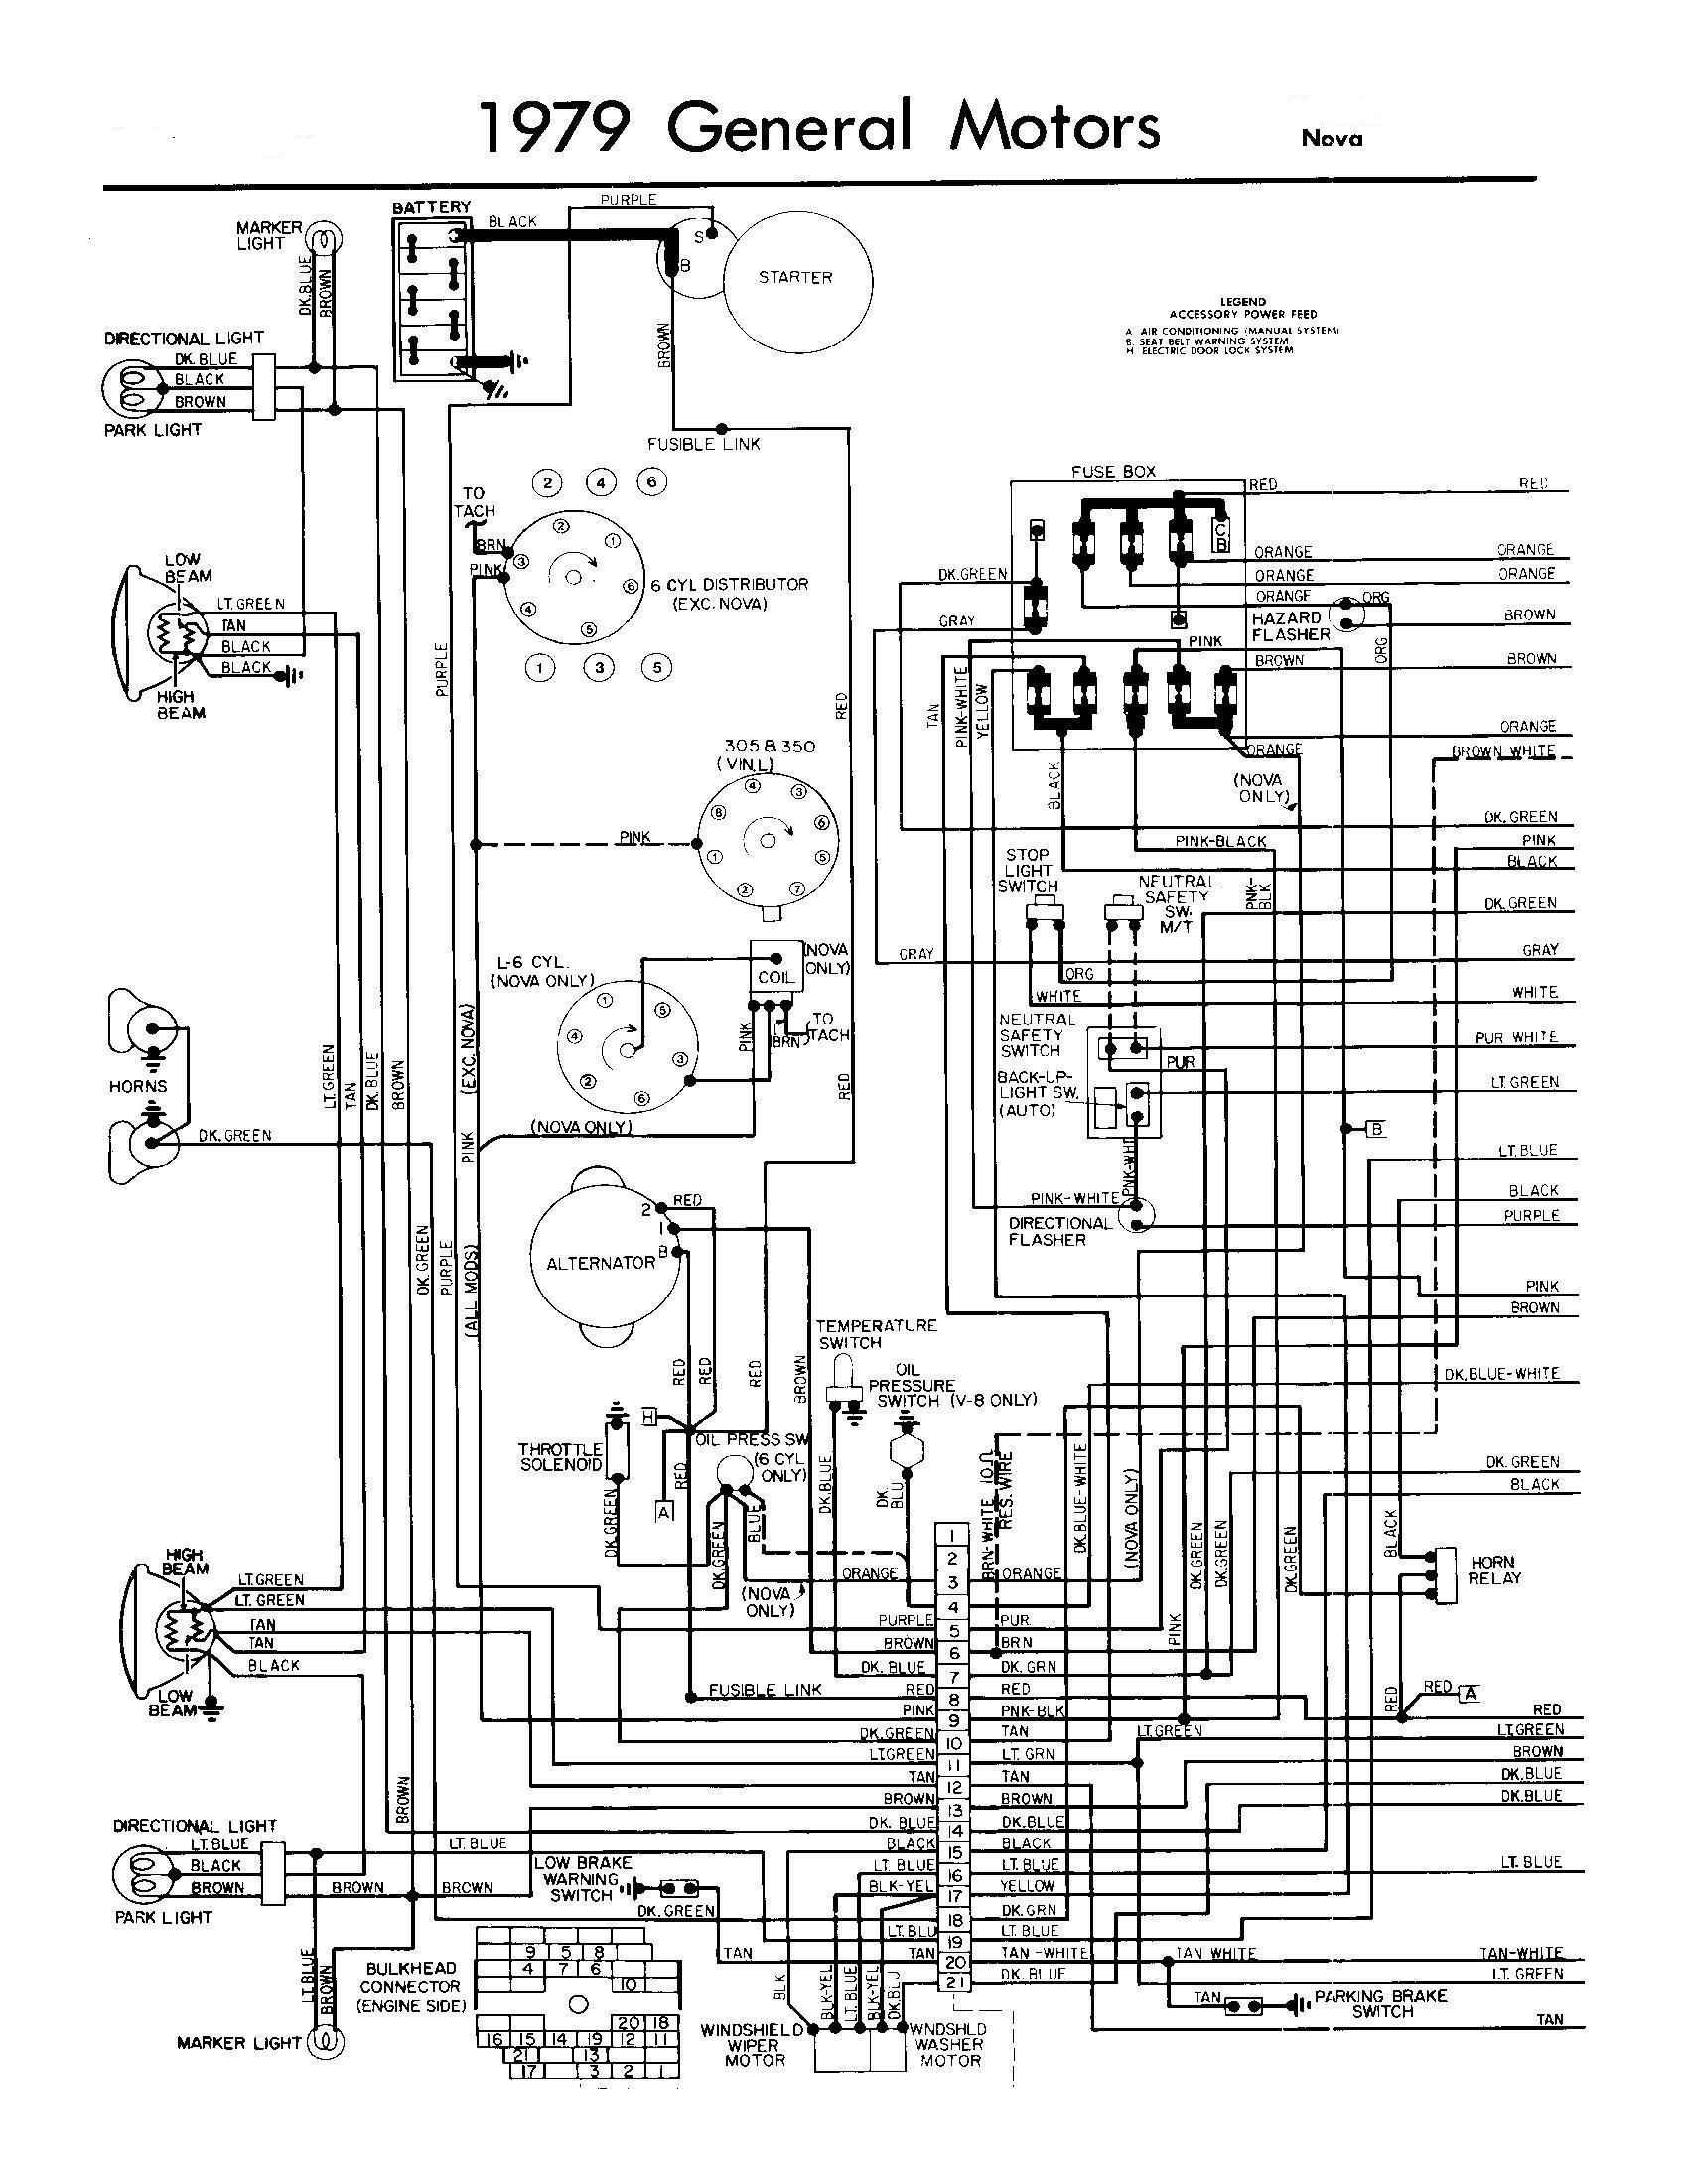 1979 chevy malibu wiring diagram diy wiring diagrams u2022 rh socialadder co Ford Tail Light Wiring Diagram Chevy Silverado Tail Light Wiring Diagram